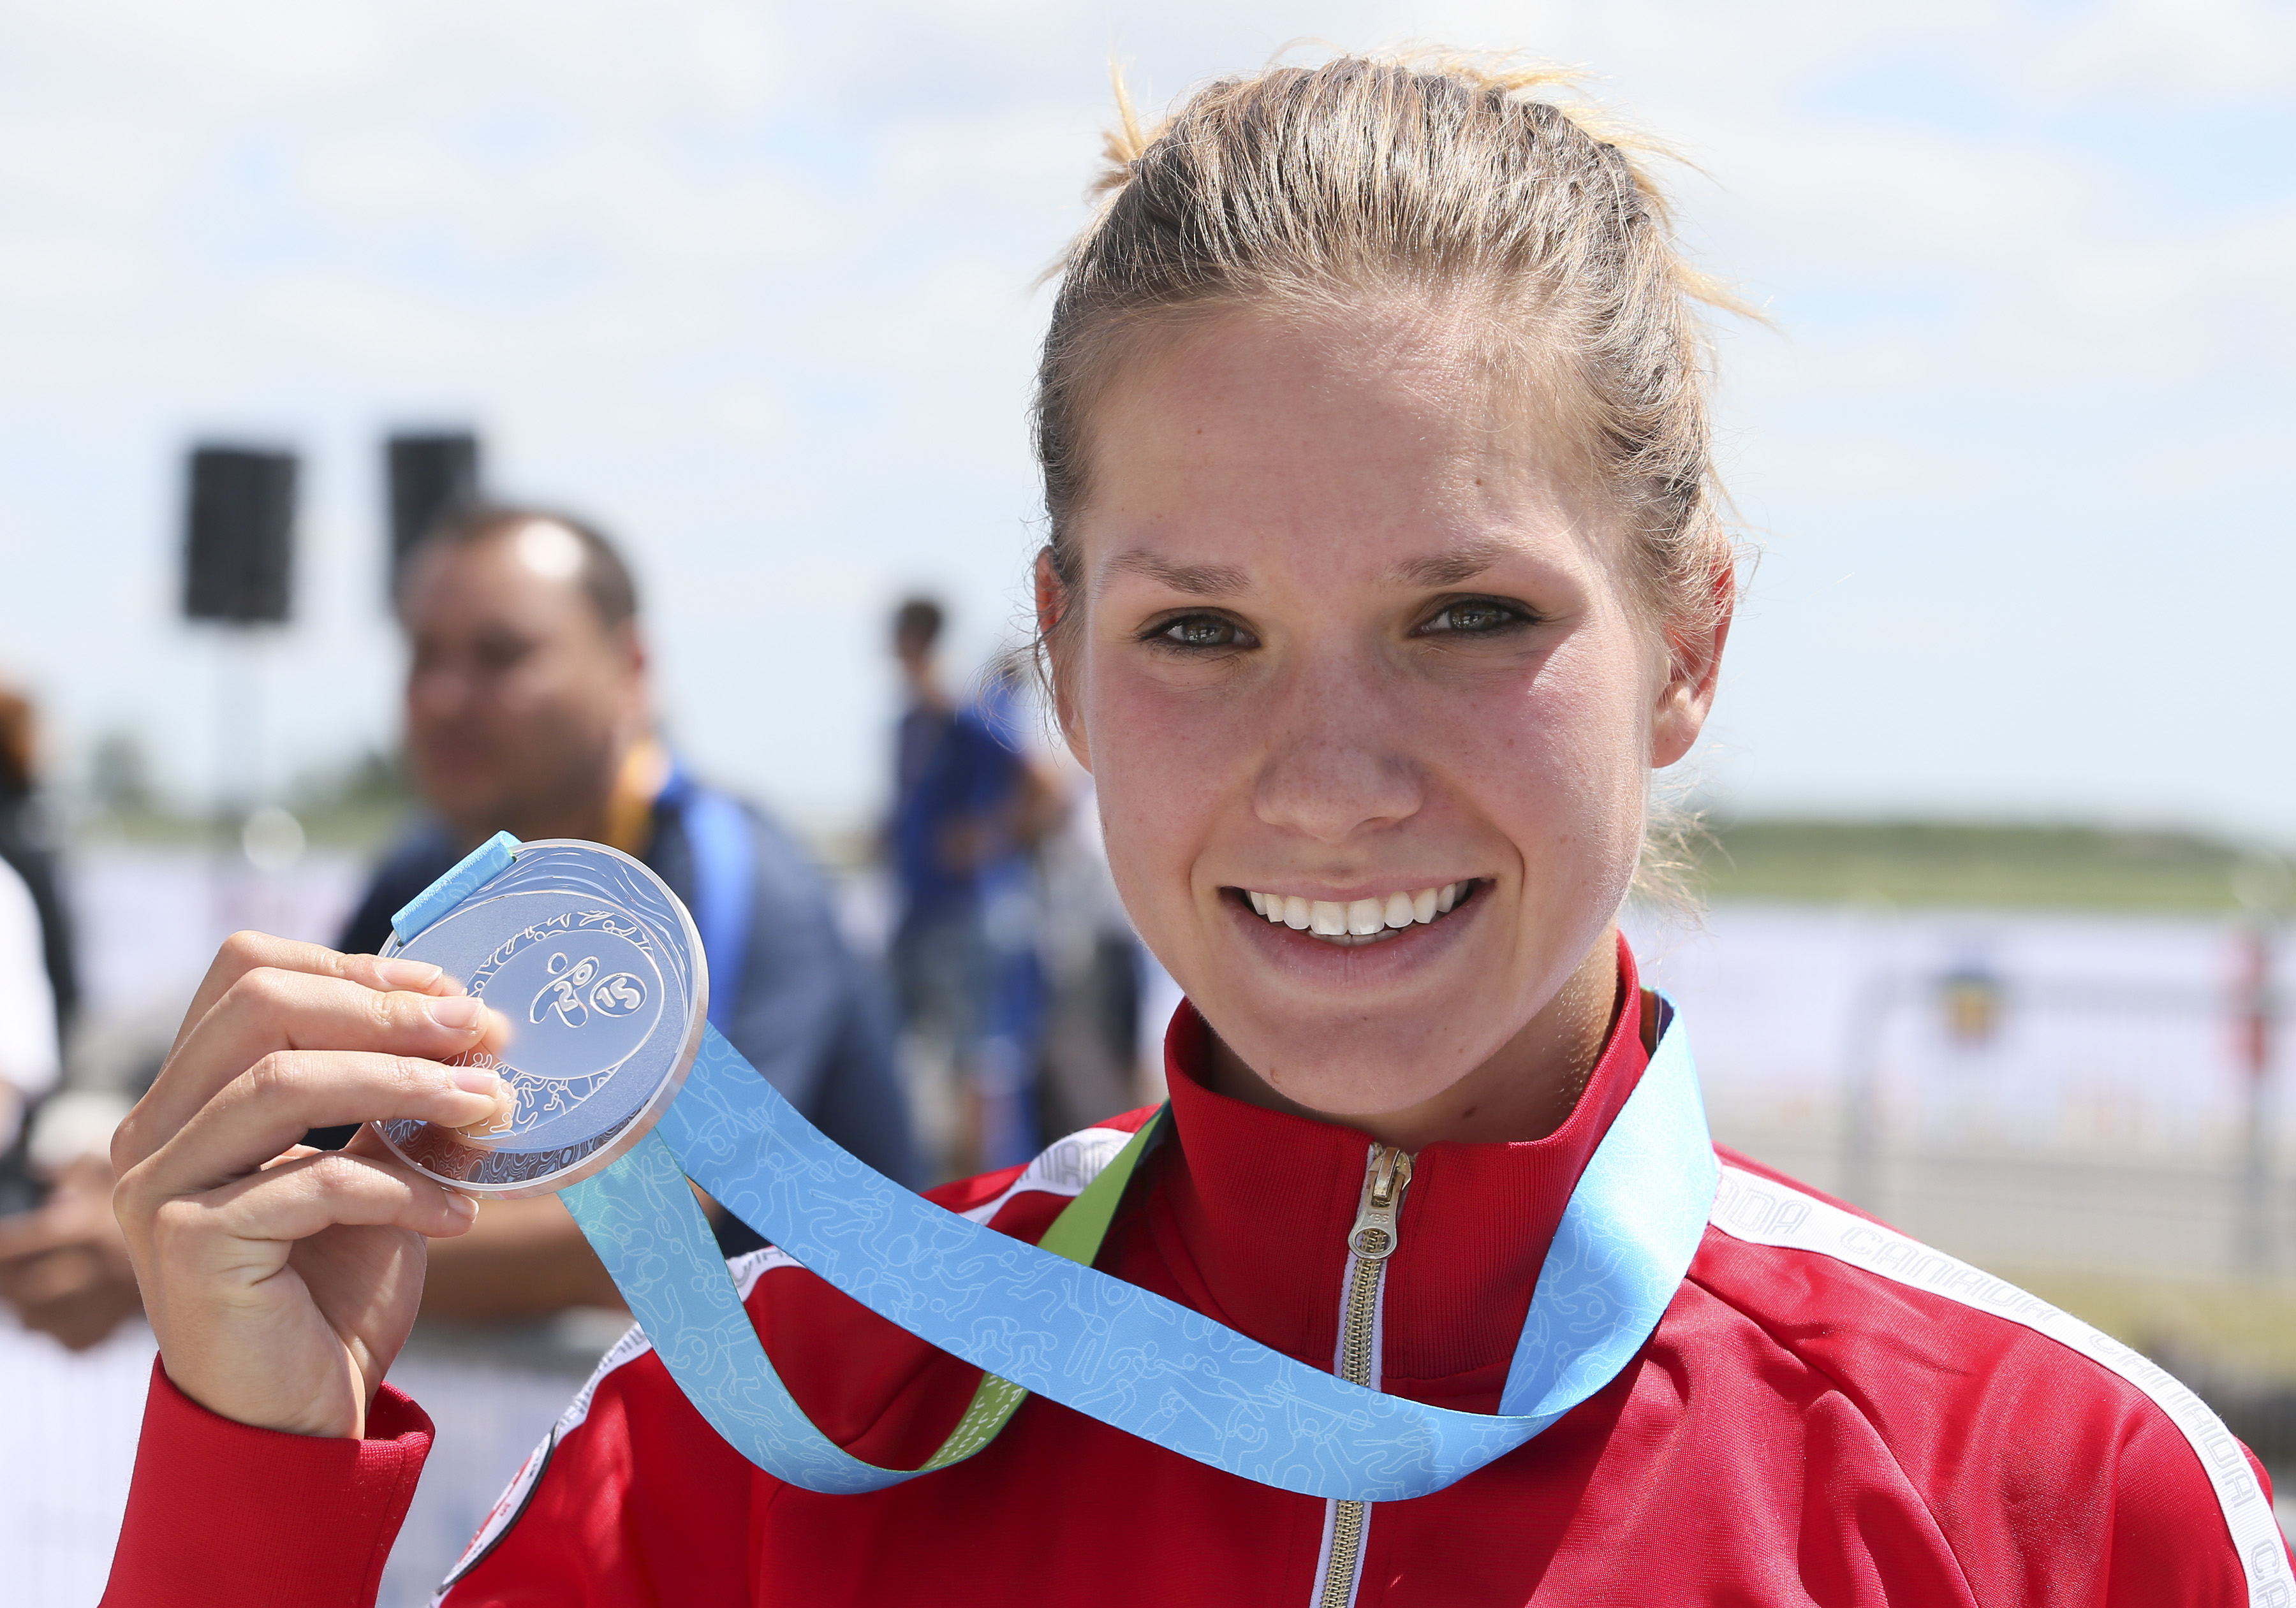 Jasmine Glassier of Vancouver was the silver medalist in the cycling time trial at the Pan American Games in Milton, Ont., Tuesday, July 21, 2015. Photo by Mike Ridewood/COC